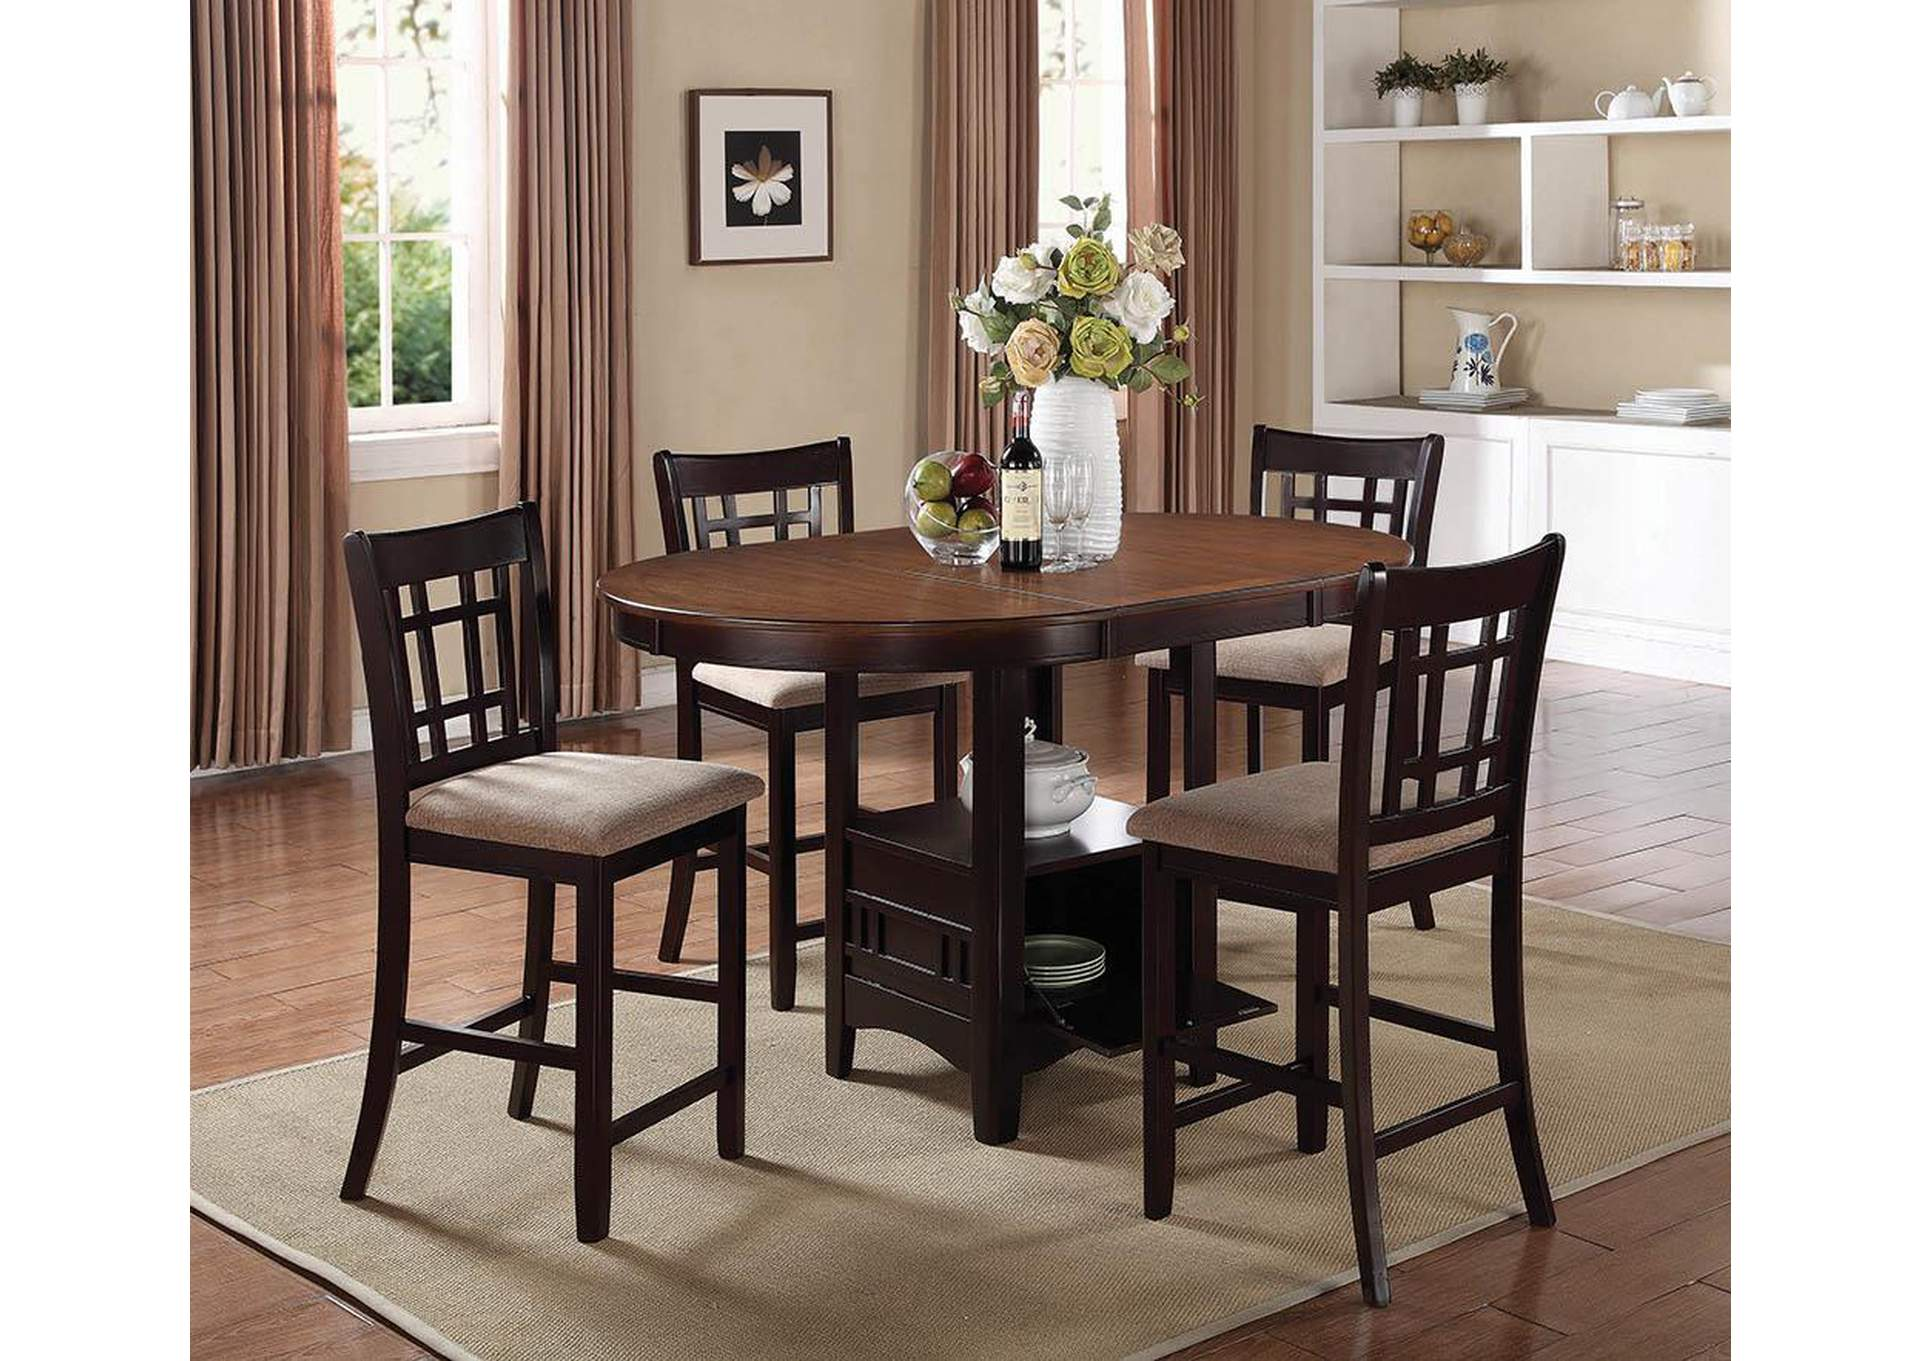 Counter Height Espresso Chairs : Coaster Furniture > Dining Room > Lavon Espresso Counter Height Chair ...